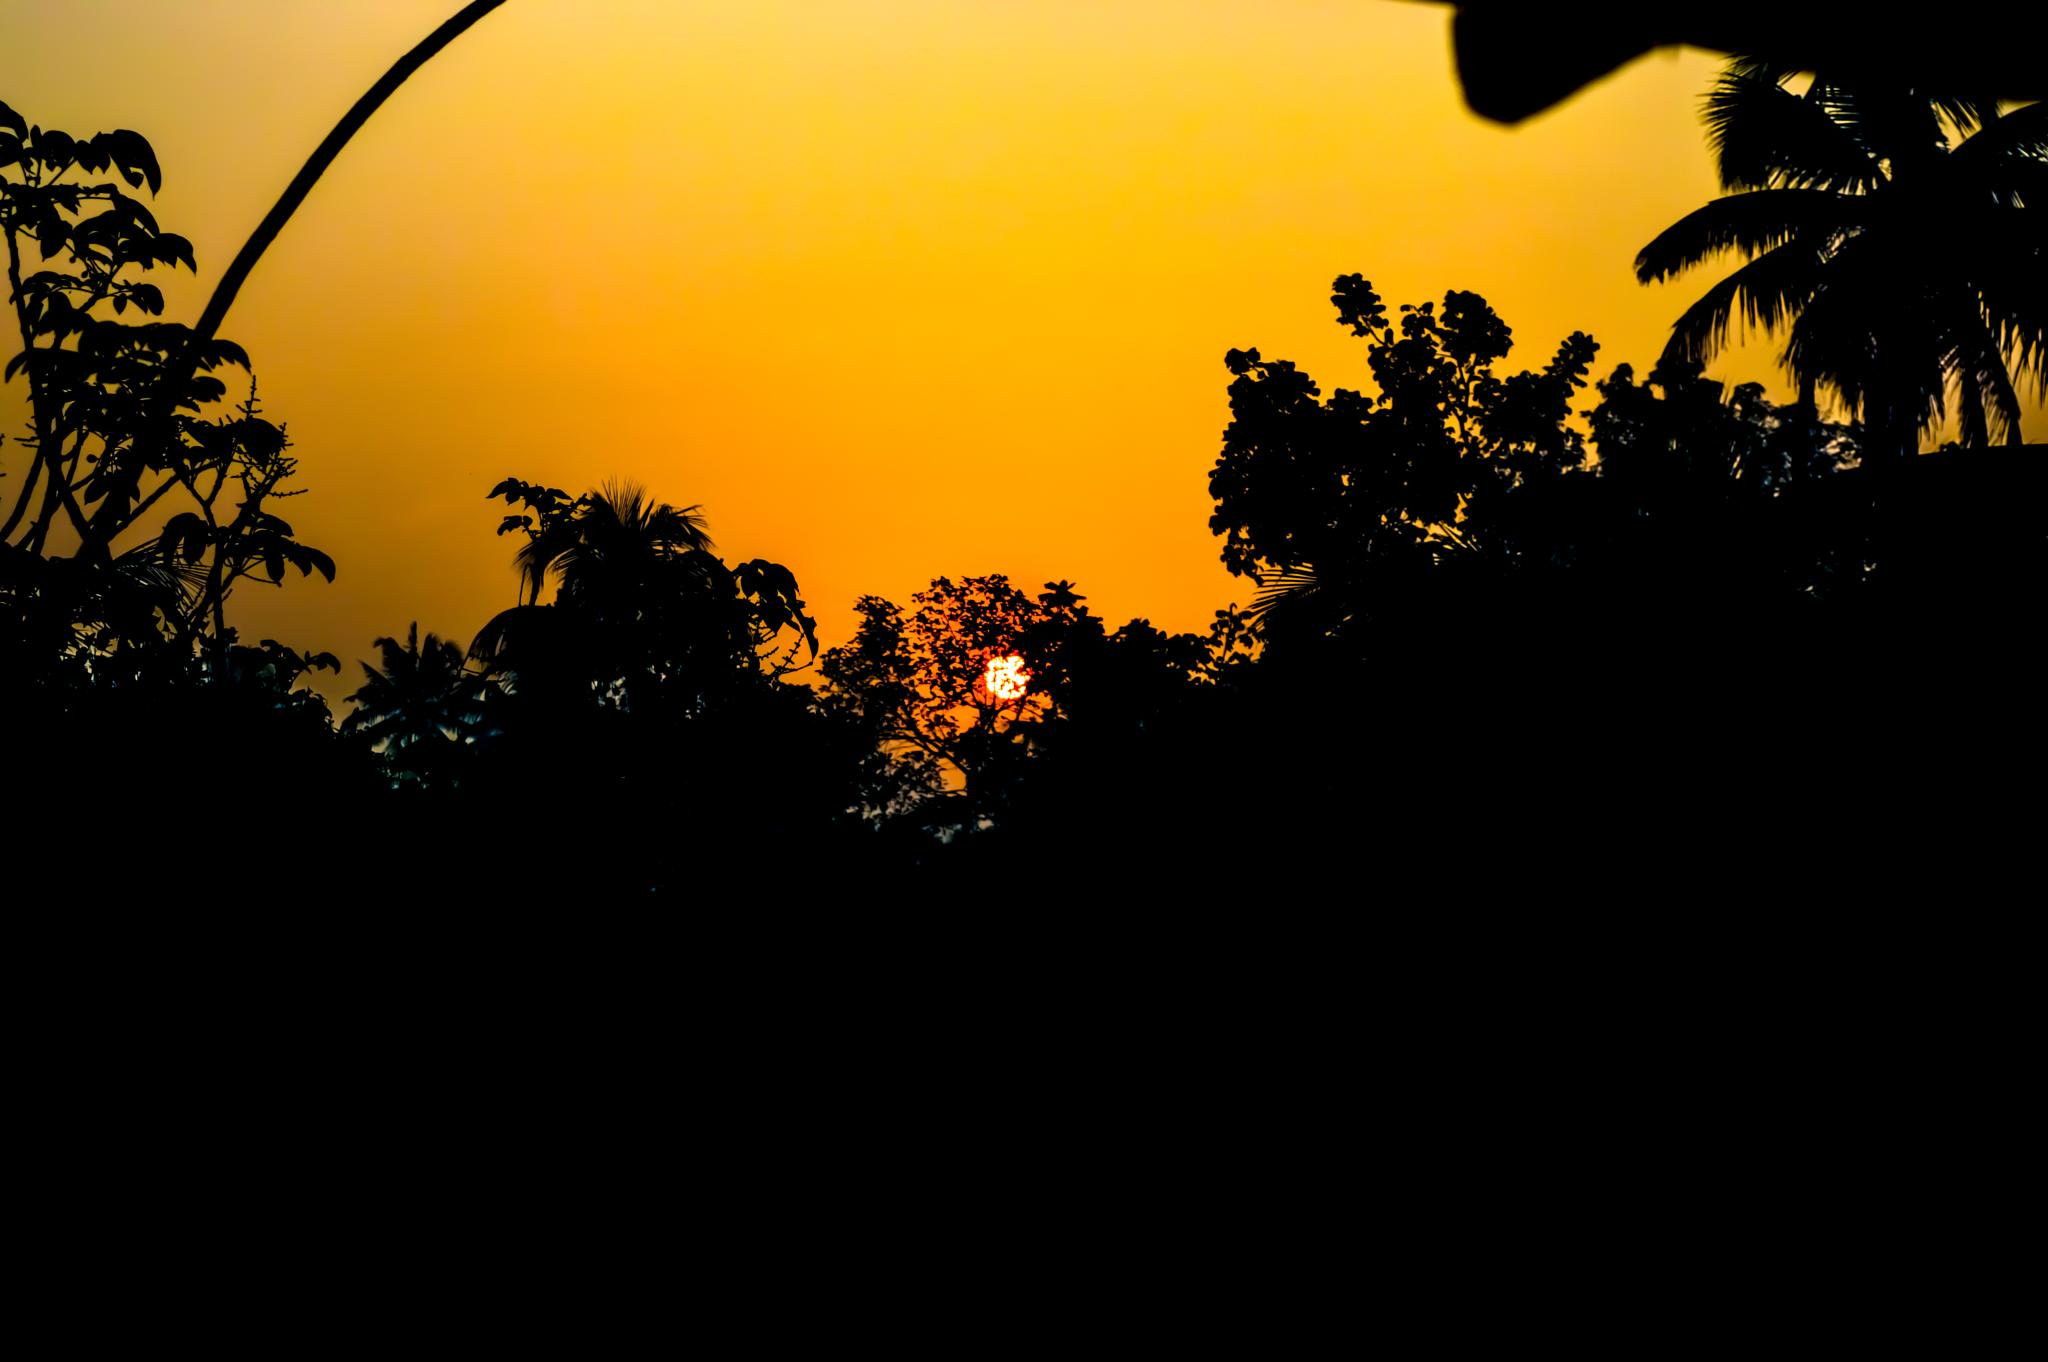 Sunrise by HABEEB RAHMAN